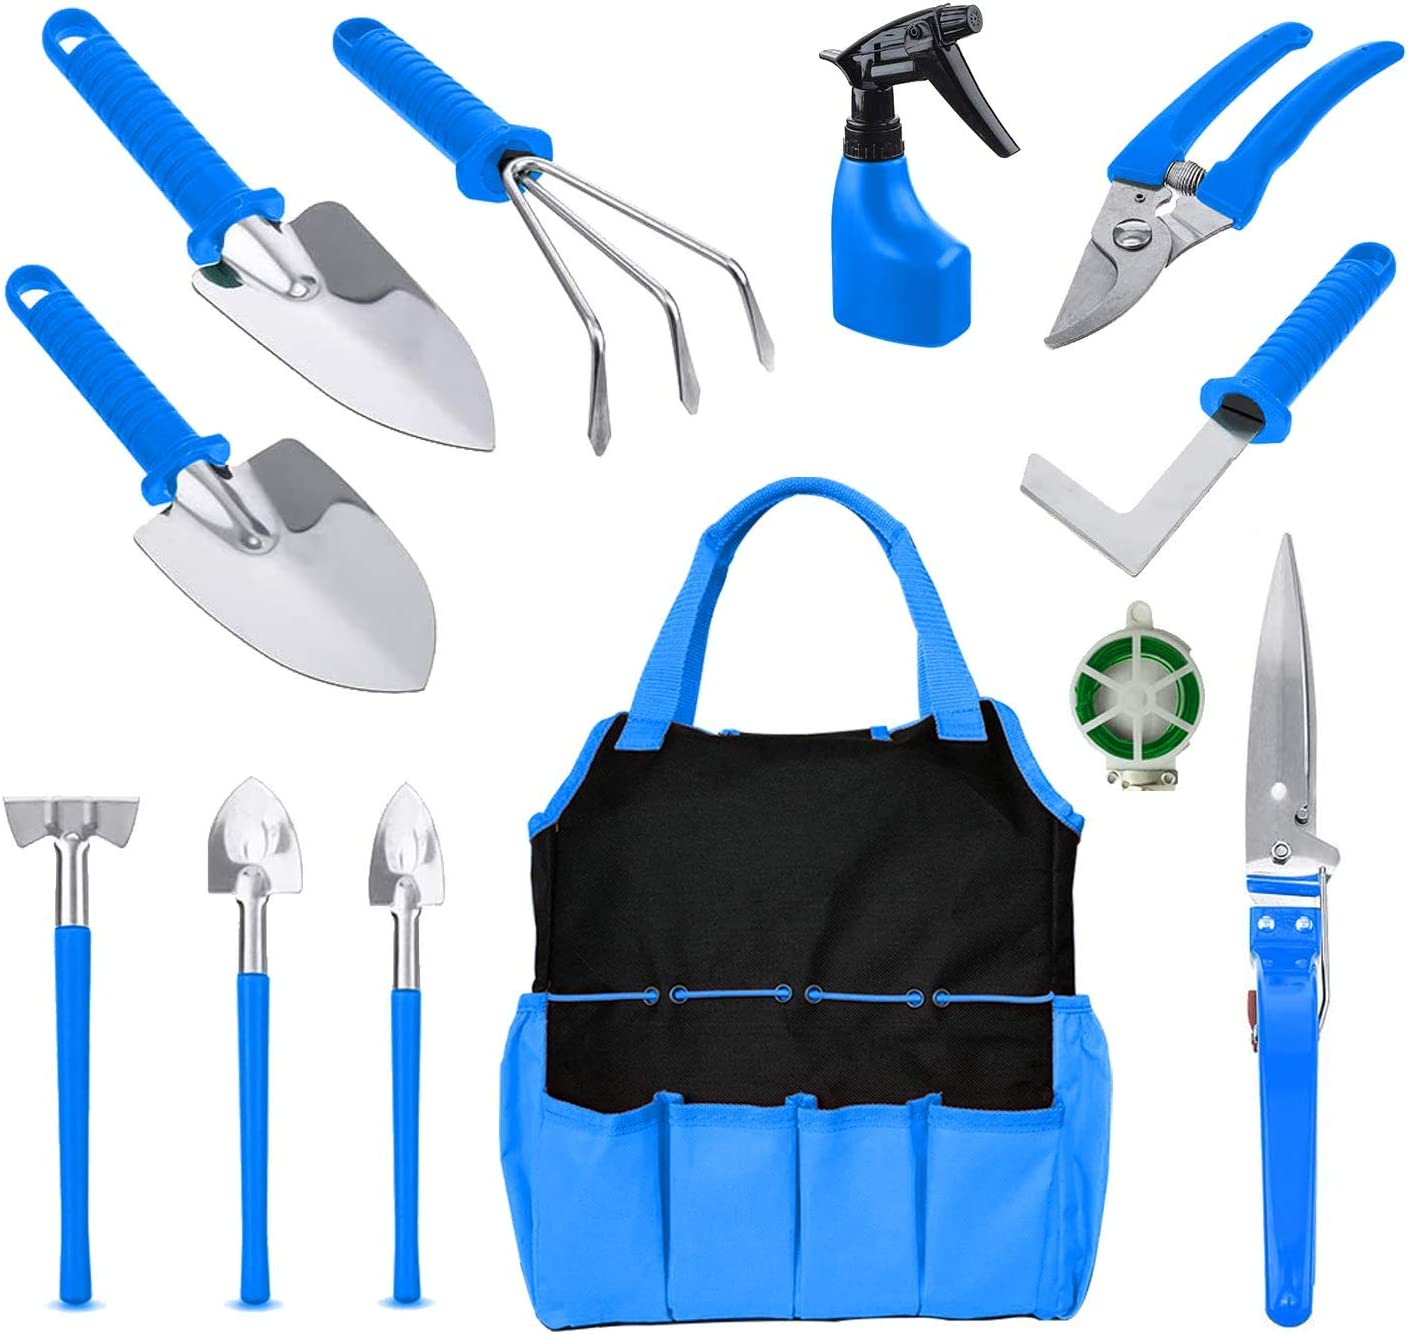 BNCHI Gardening Tools Set,12 Pieces Stainless Steel Garden Hand Tool, Gardening Gifts for Women,Men,Gardener (Blue)